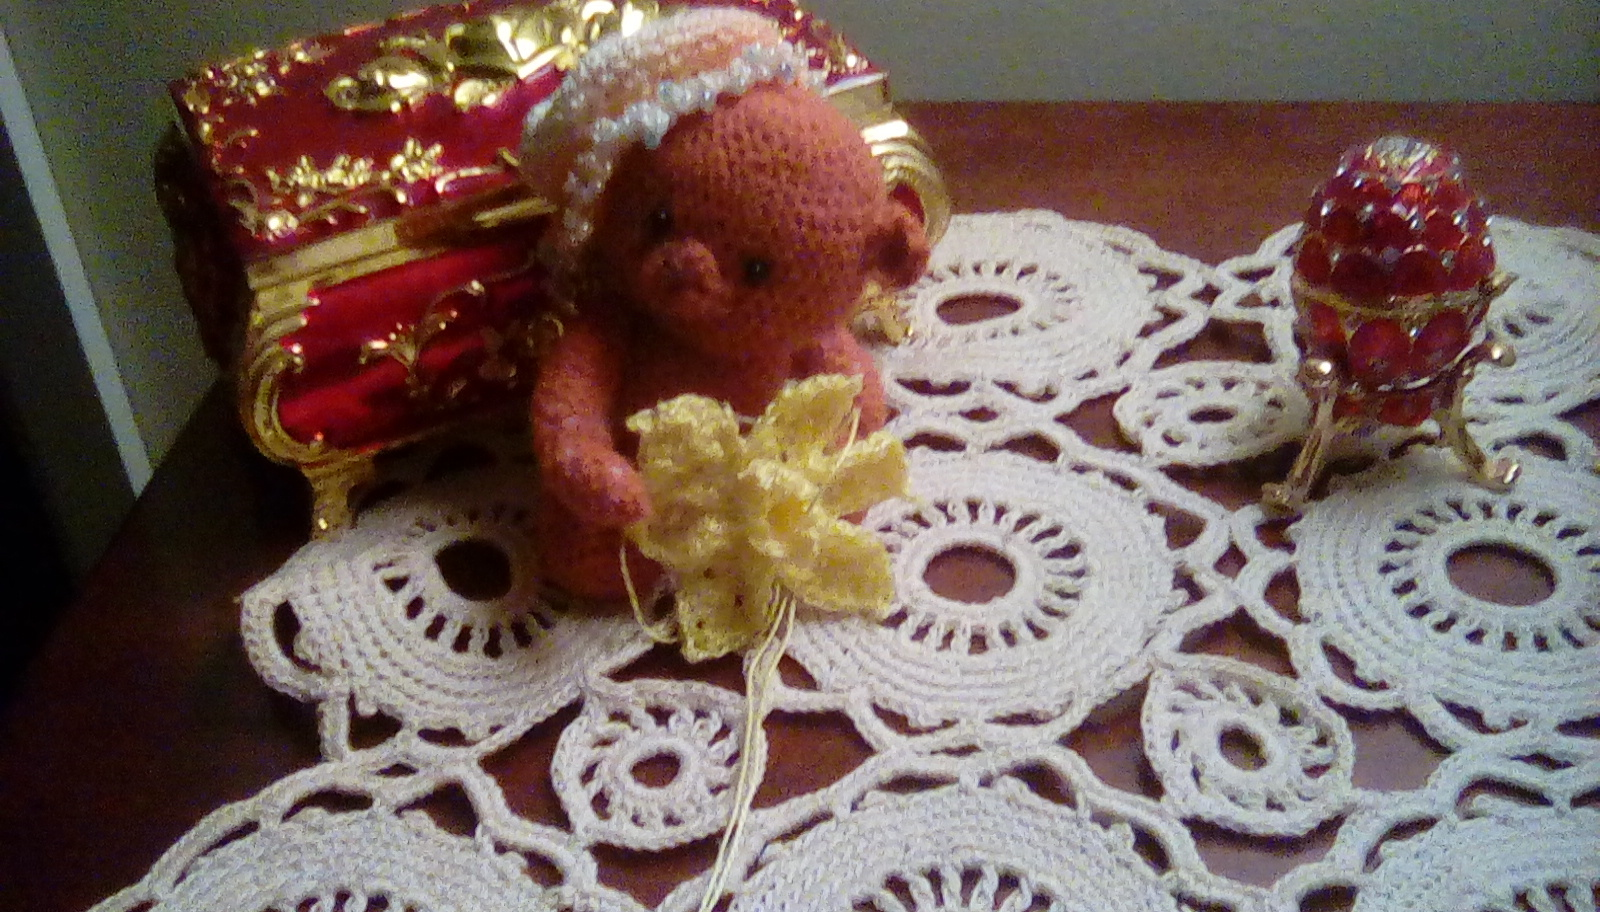 Marie Curie Crochet Daffodil Brooch Crochet Project By Lucy